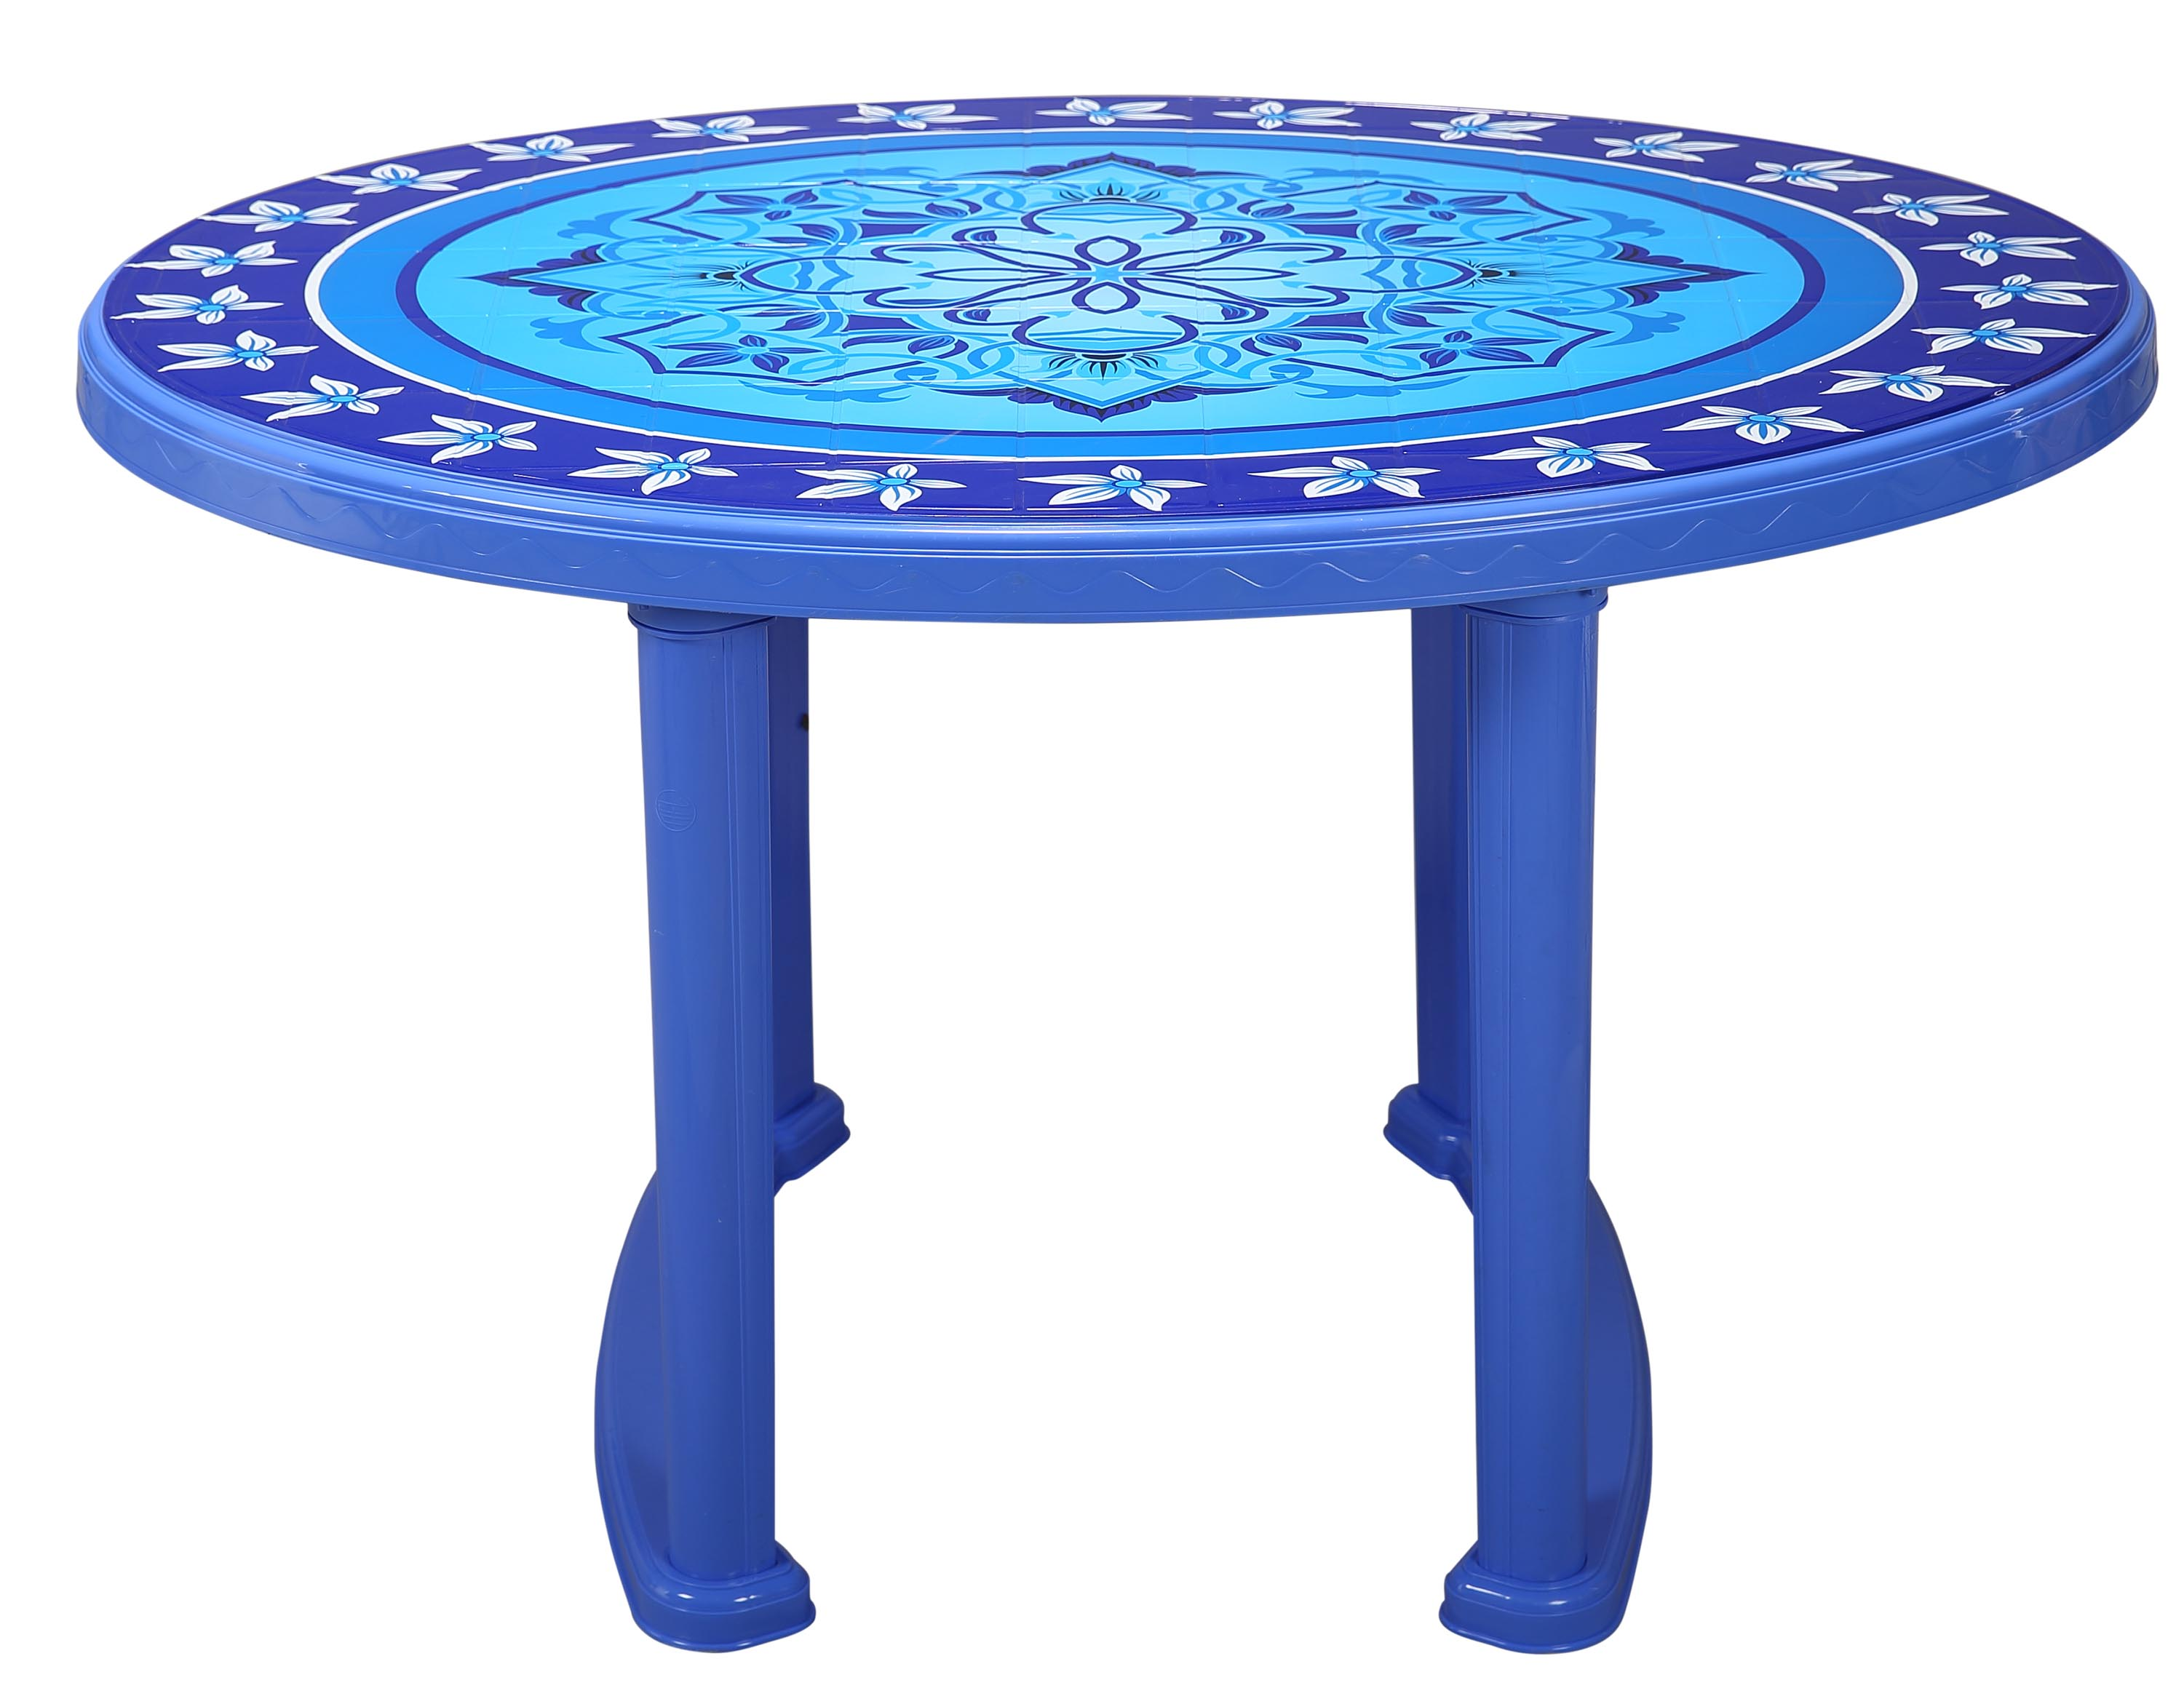 Dining Table 4 Seat Oval P/L Print Love Tree-Blue